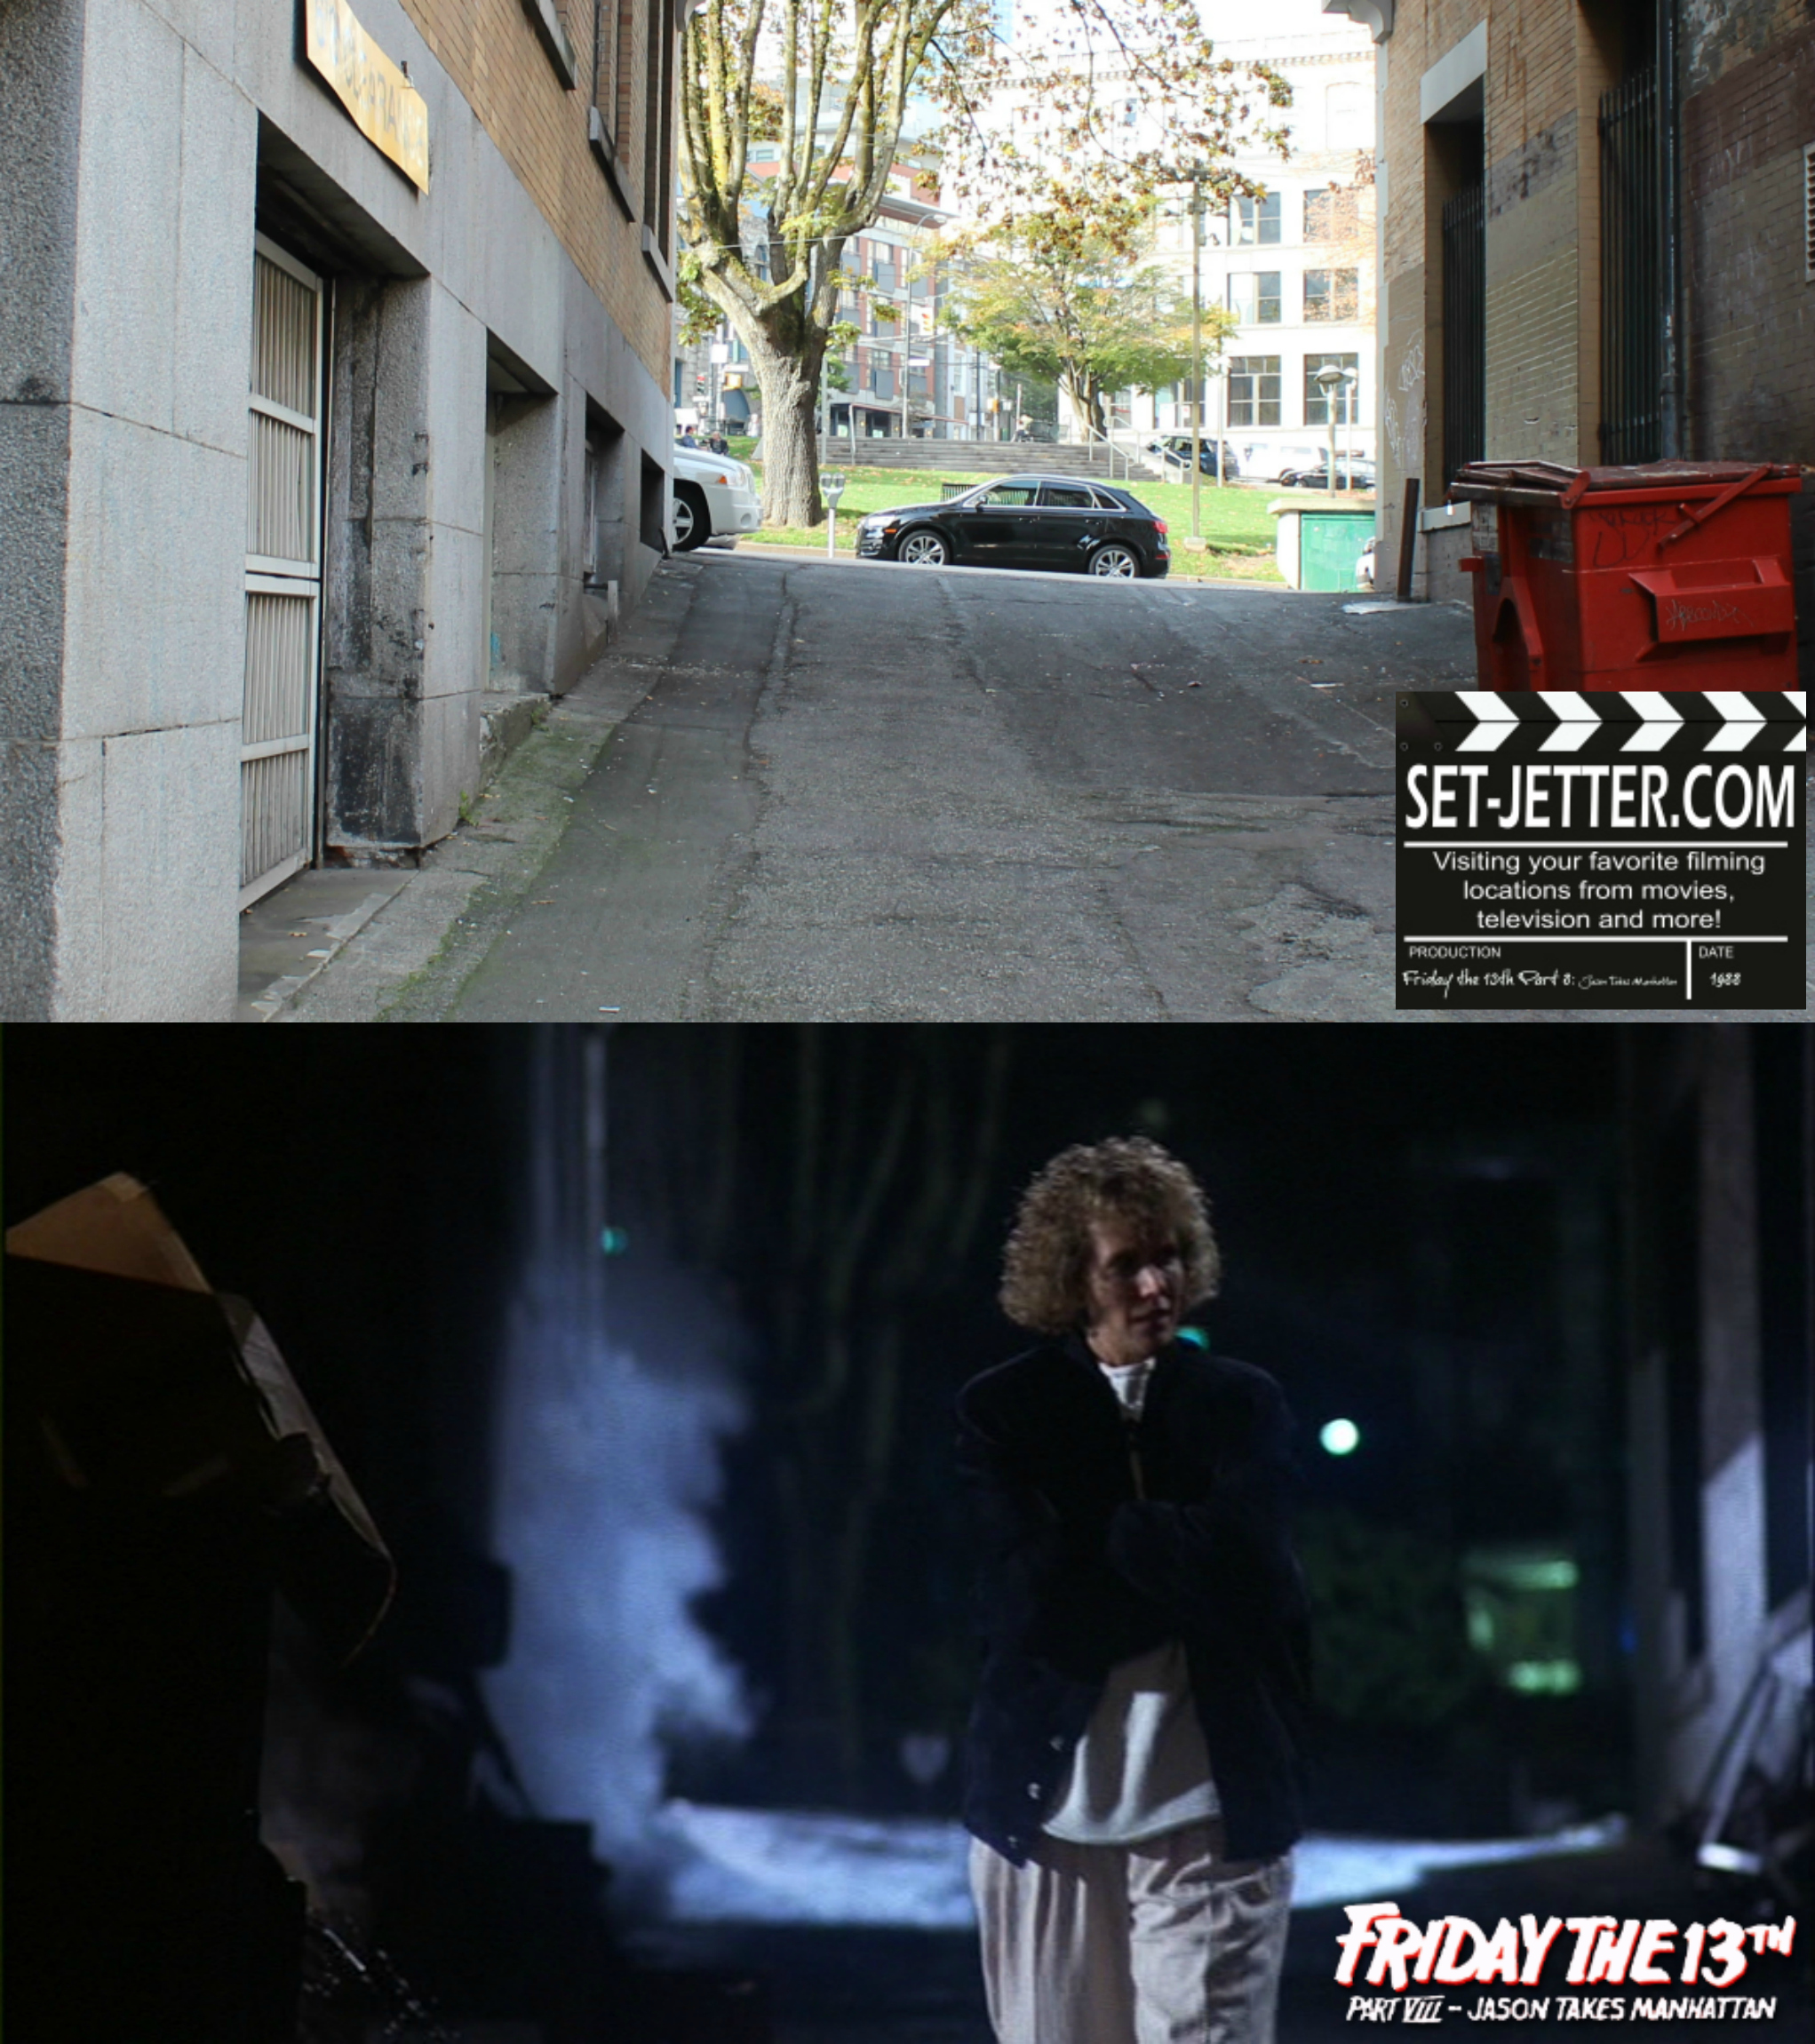 Friday the 13th Part 8 comparison 41.jpg